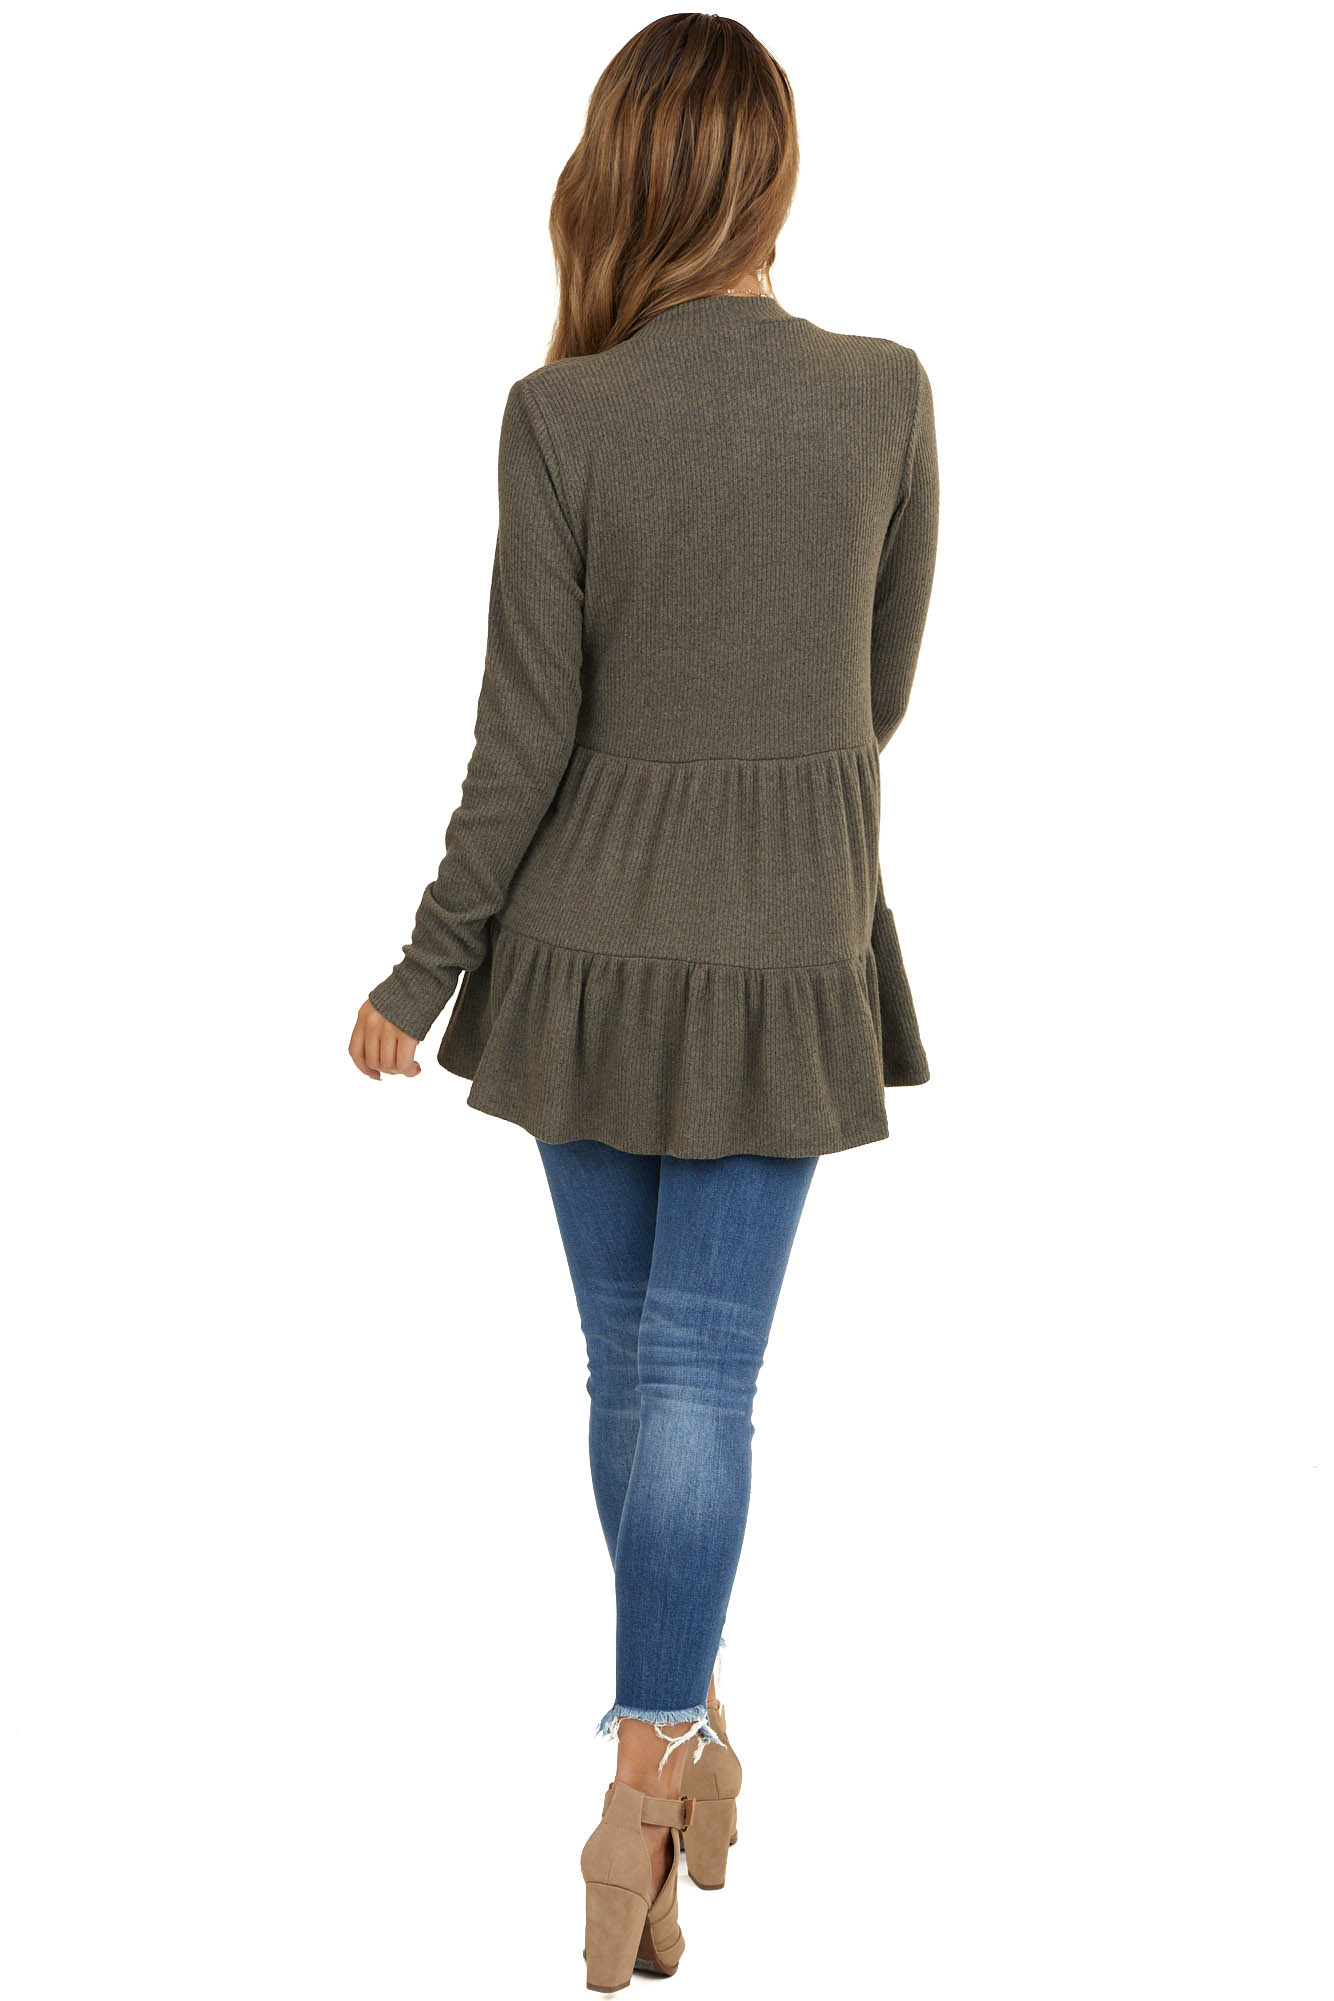 Heathered Dark Olive Mock Neck Knit Top with Long Sleeves